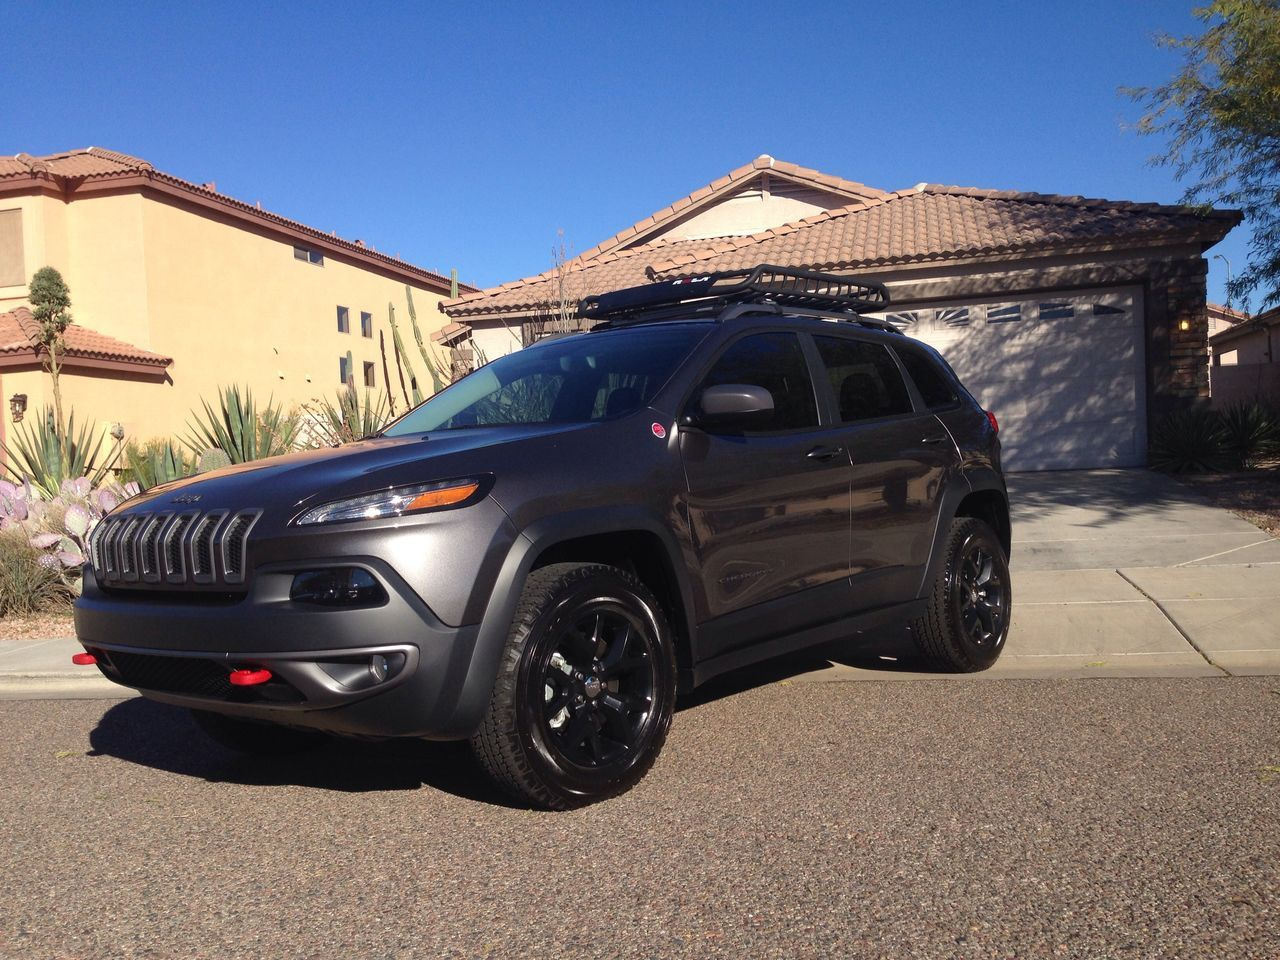 dream car 2015 jeep cherokee trailhawk in granite crystal with blacked out tires inspire. Black Bedroom Furniture Sets. Home Design Ideas